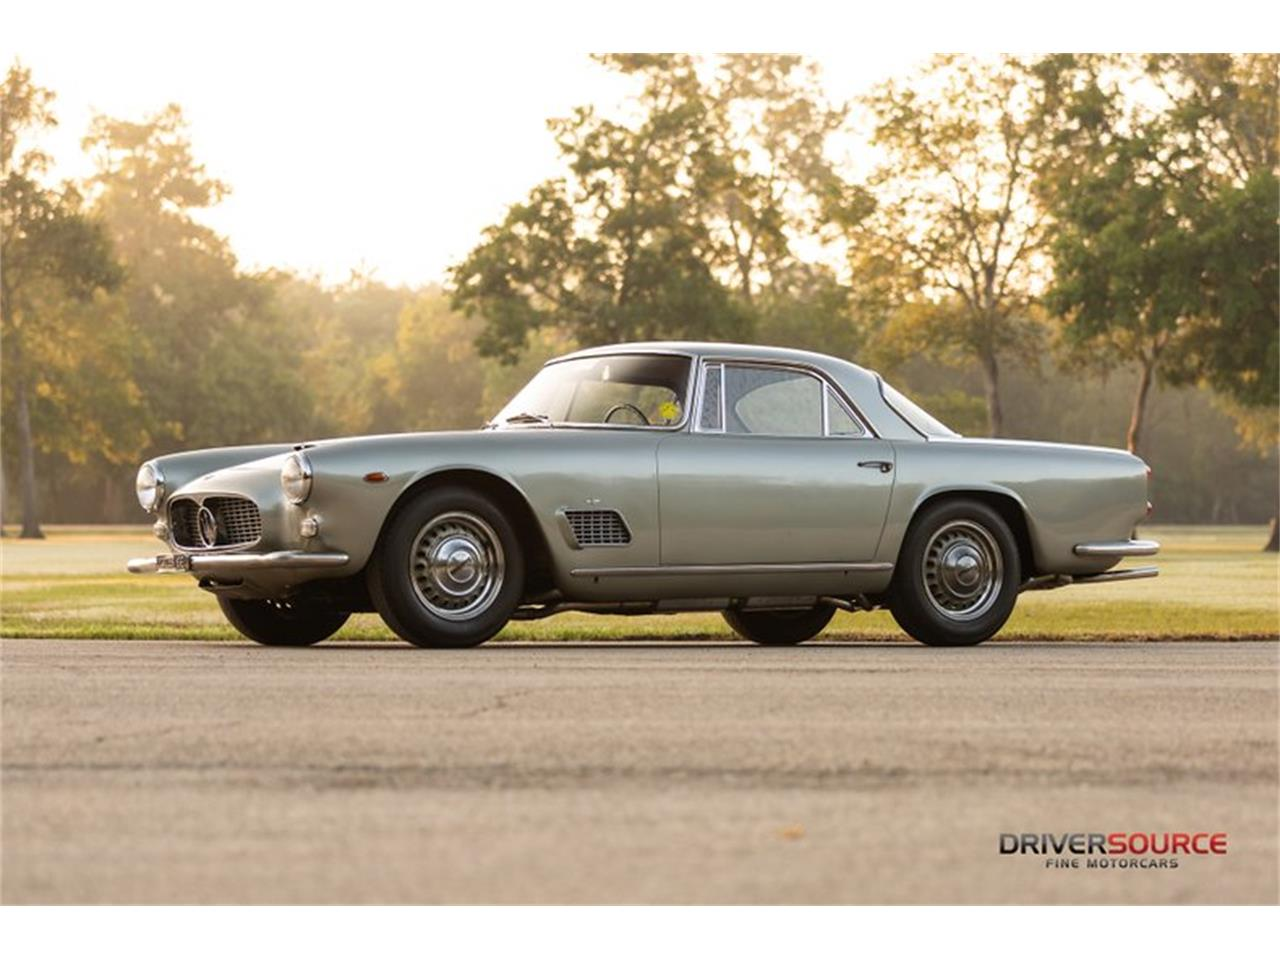 Large Picture of 1962 Maserati 3500 located in Houston Texas Offered by Driversource - OCR7